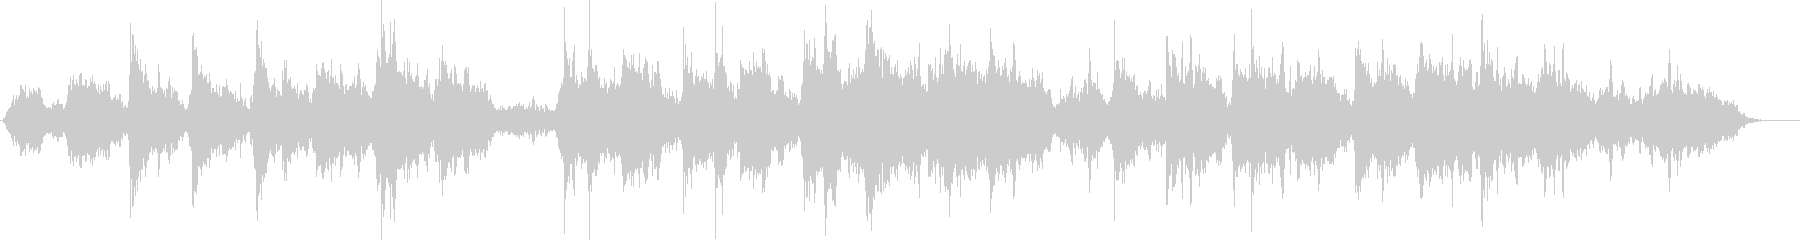 A very mysterious melody's unreproduced waveform